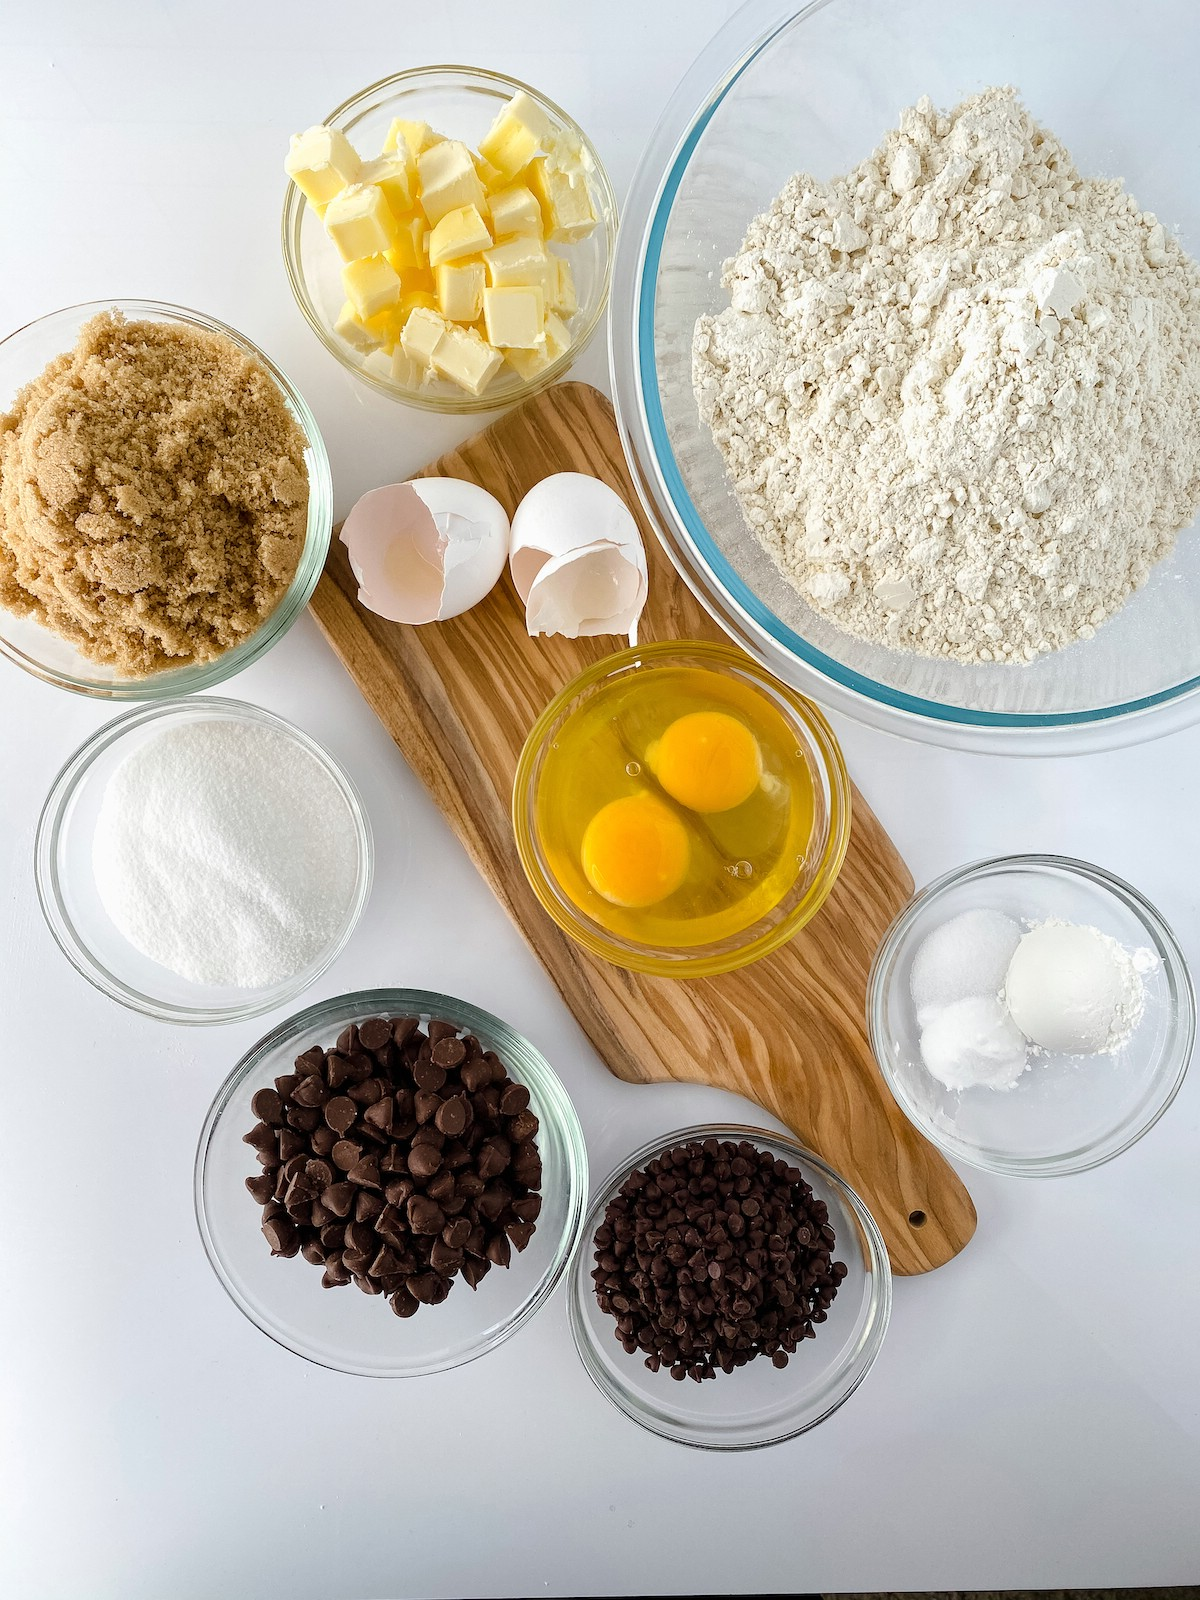 Ingredients for monster chocolate chip cookies